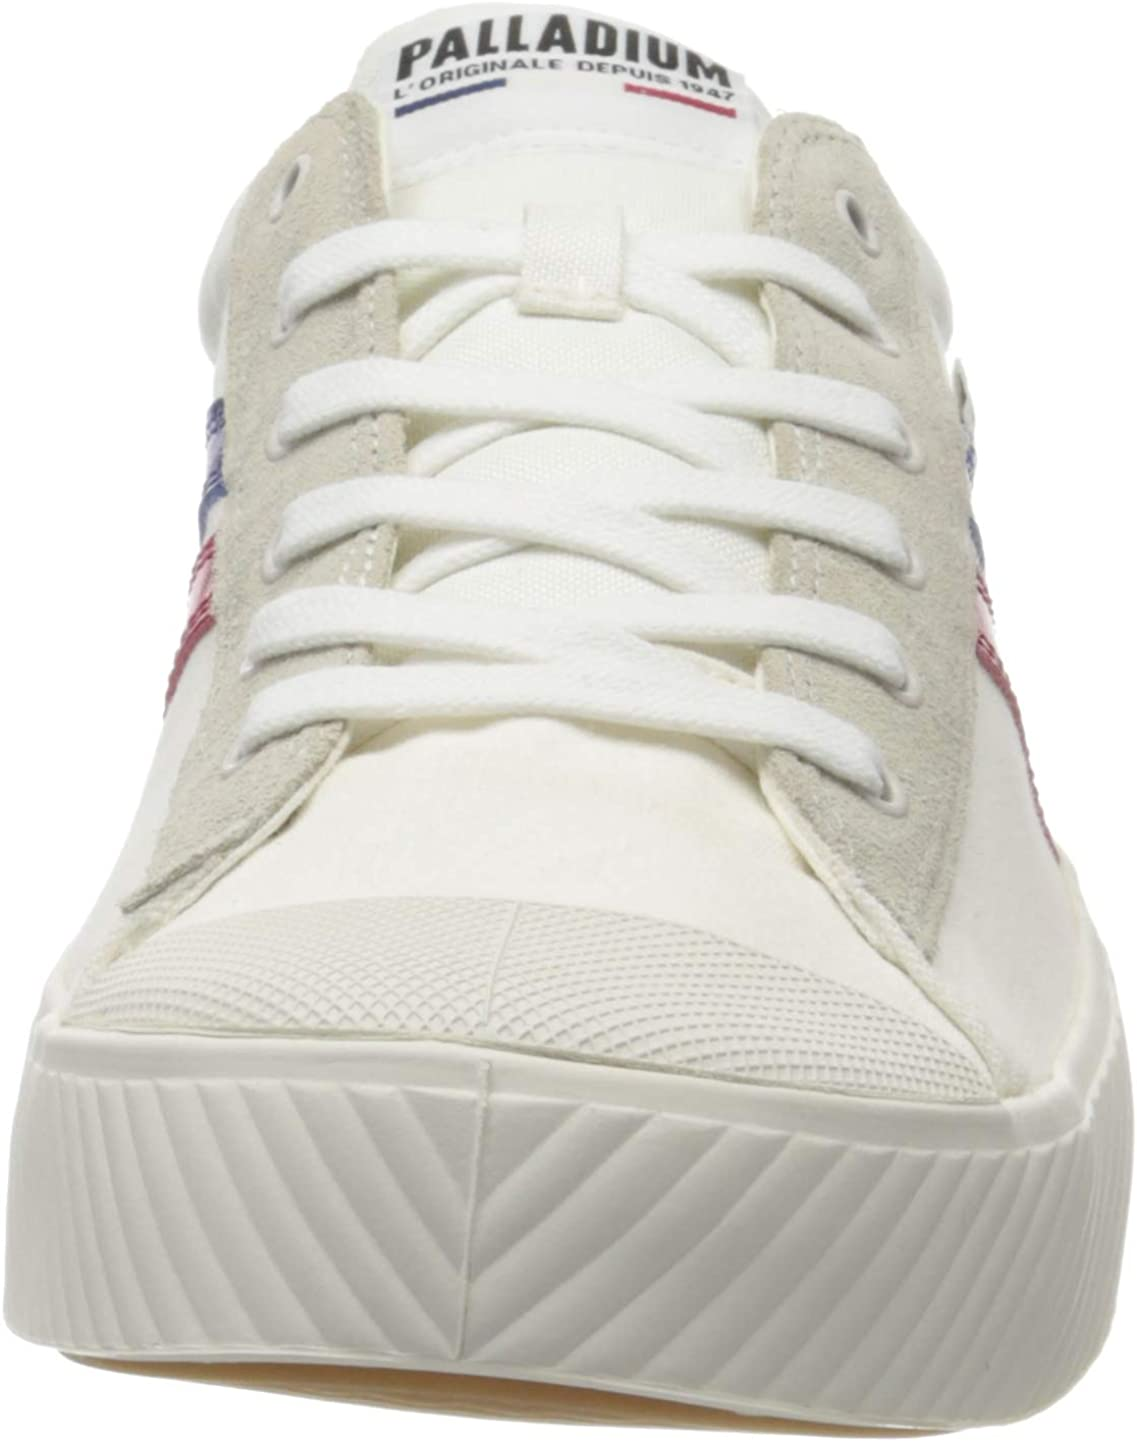 Palladium Men's Low-Top Trainers White (Star White/French S97)